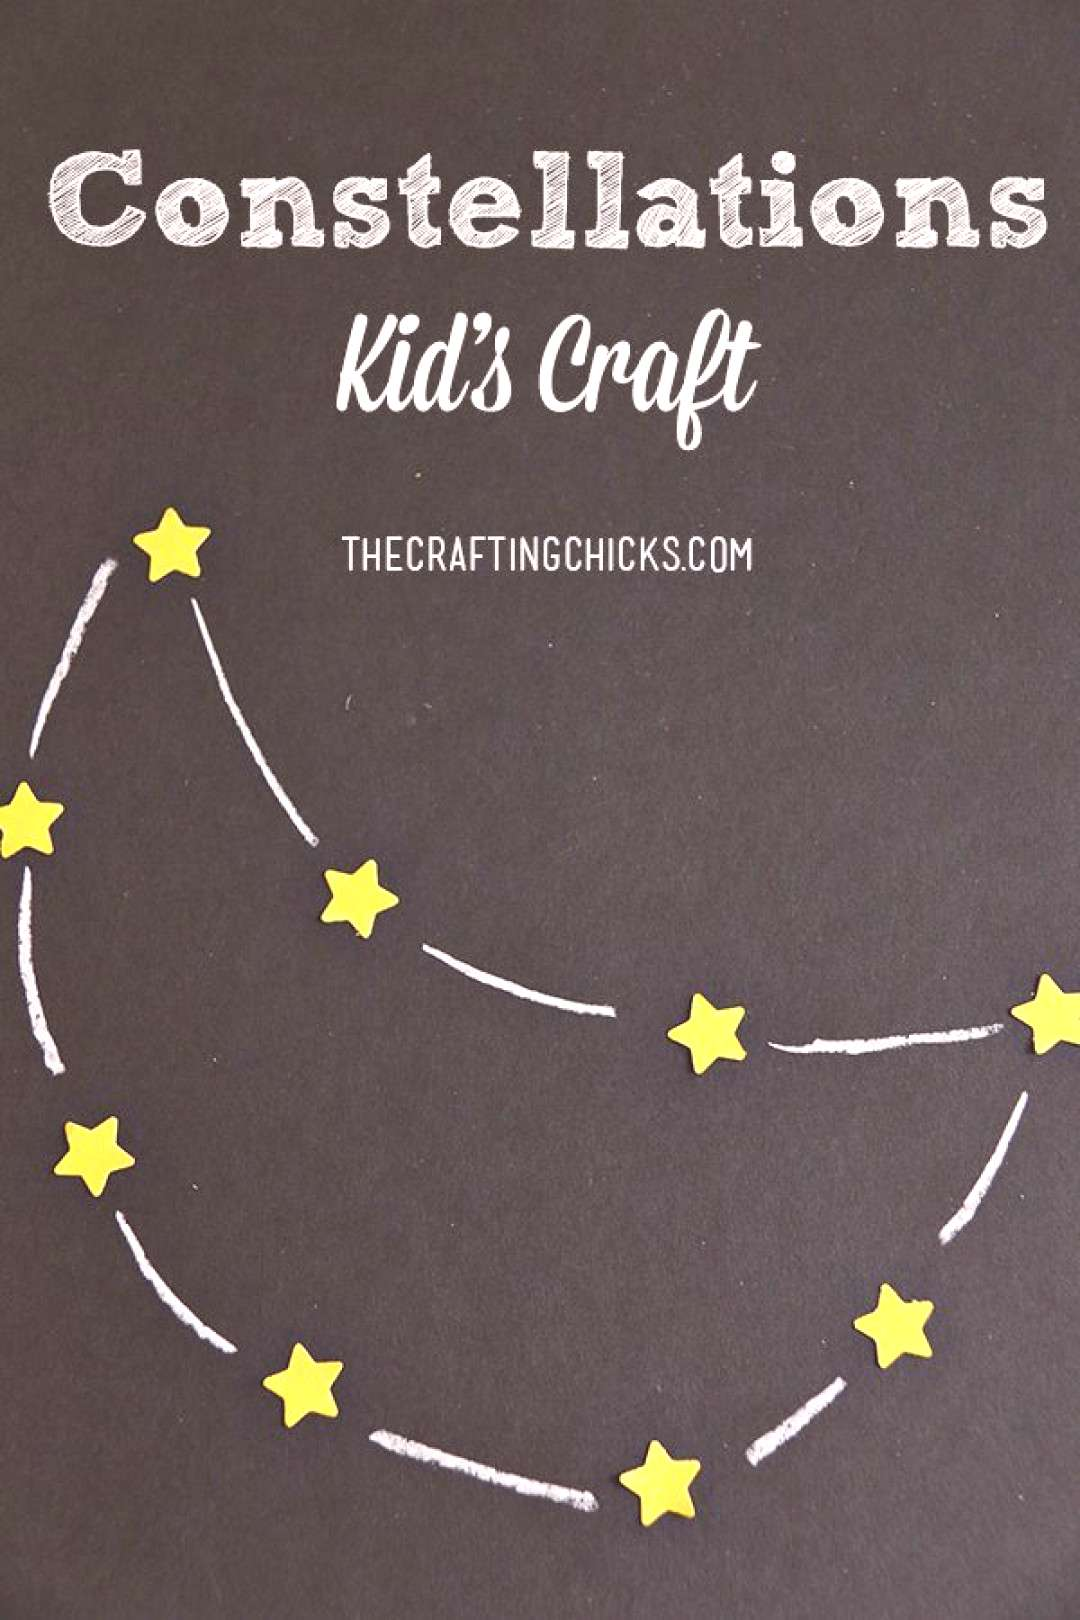 Constellations Kid Craft,Constellations Kid's Craft - Space week activities Tot i que les act... Co